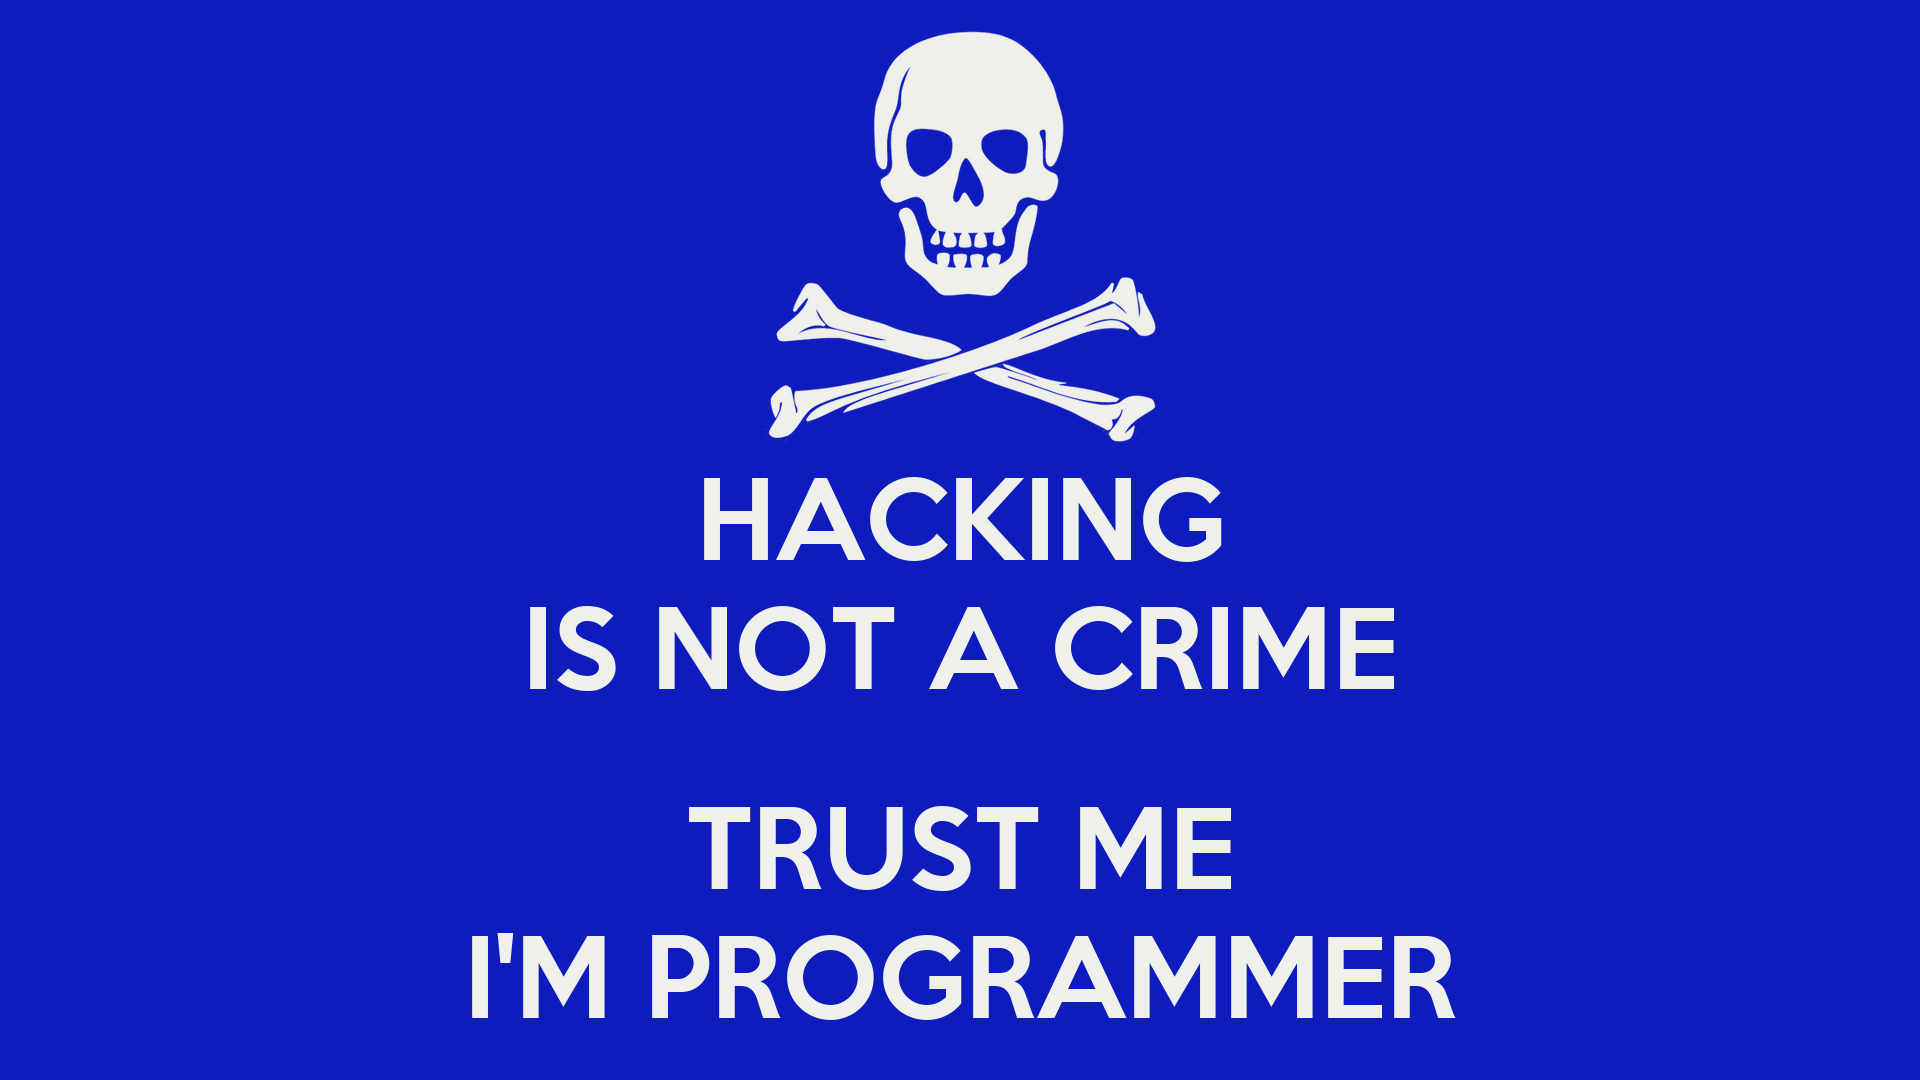 HackinG Is NoT a CriMe. TrusT Me I'm PrOgrammEr